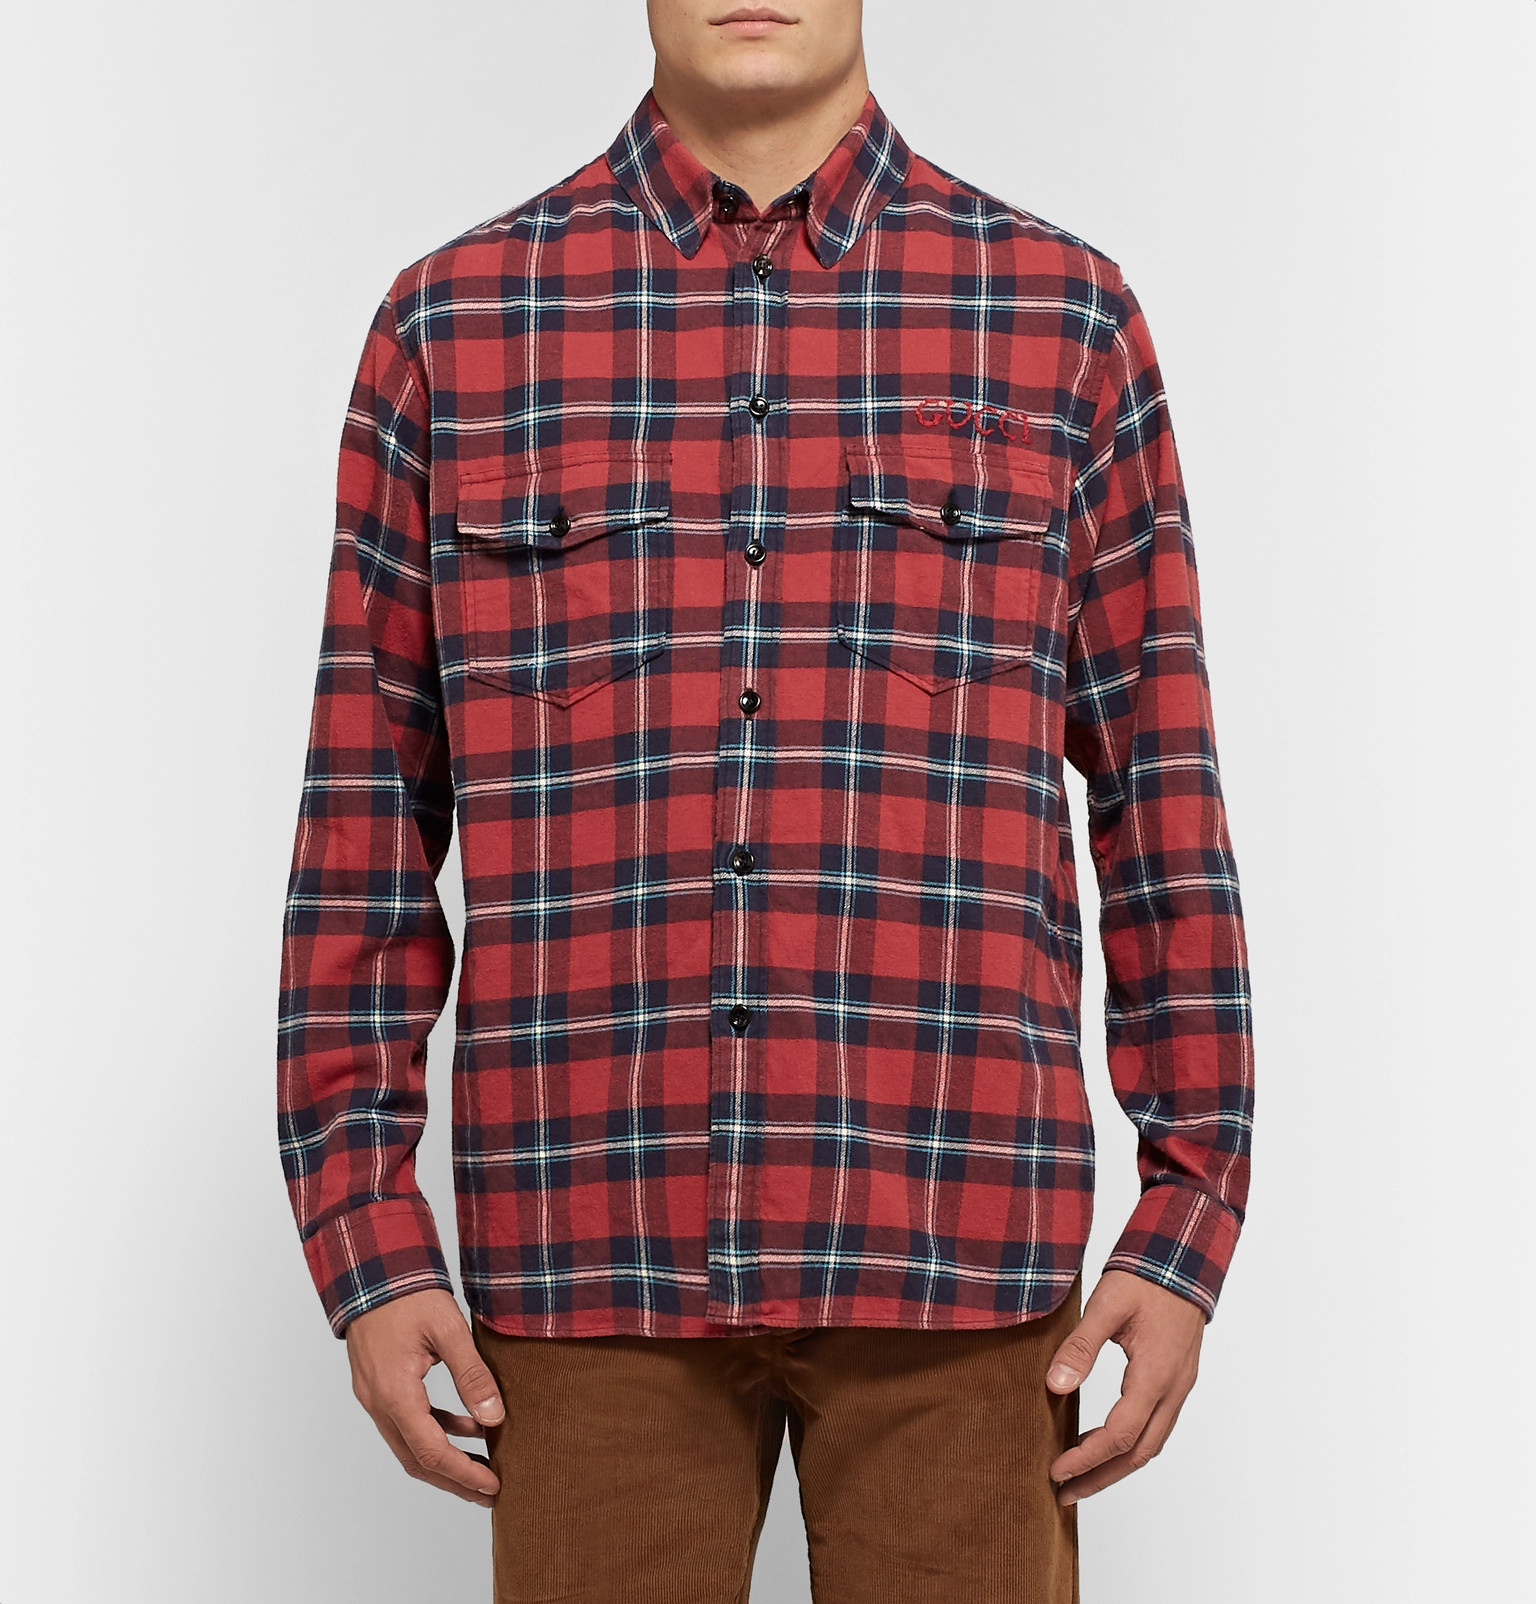 a466a93b2 Gucci - Oversized Embroidered Checked Cotton-Flannel Shirt